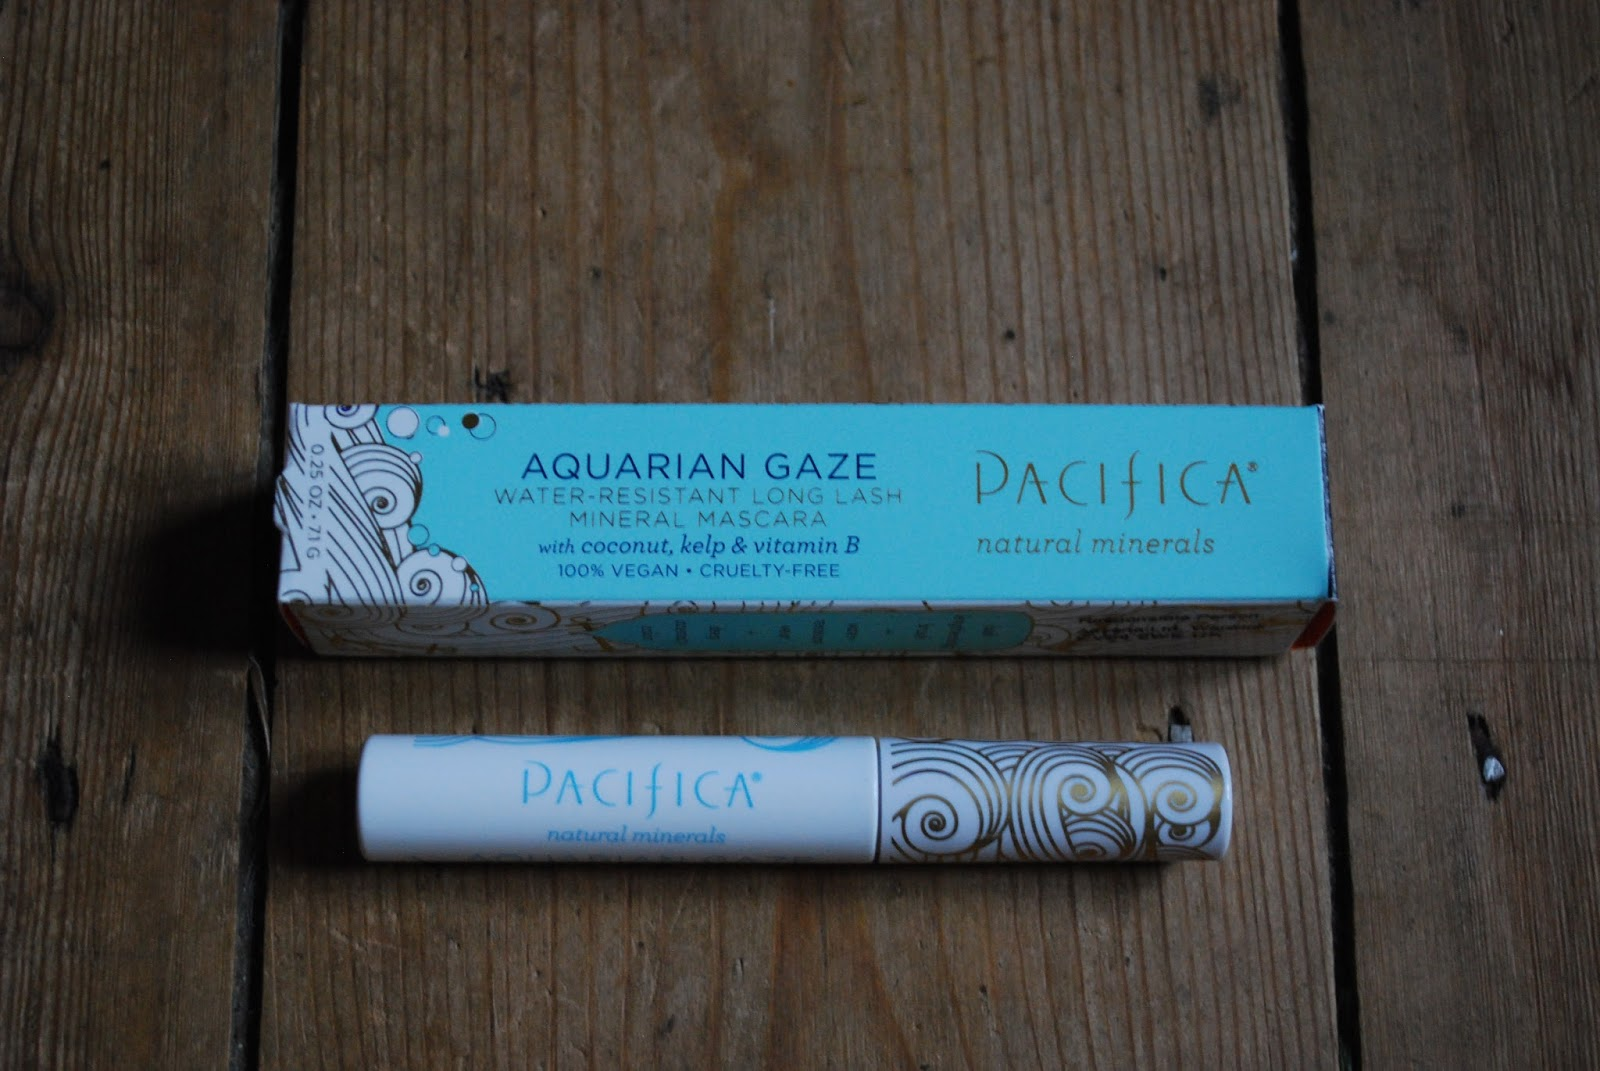 b7a58246365 Pacifica Aquarian Gaze Water-Resistant Mascara Shade Abyss Black - Review*